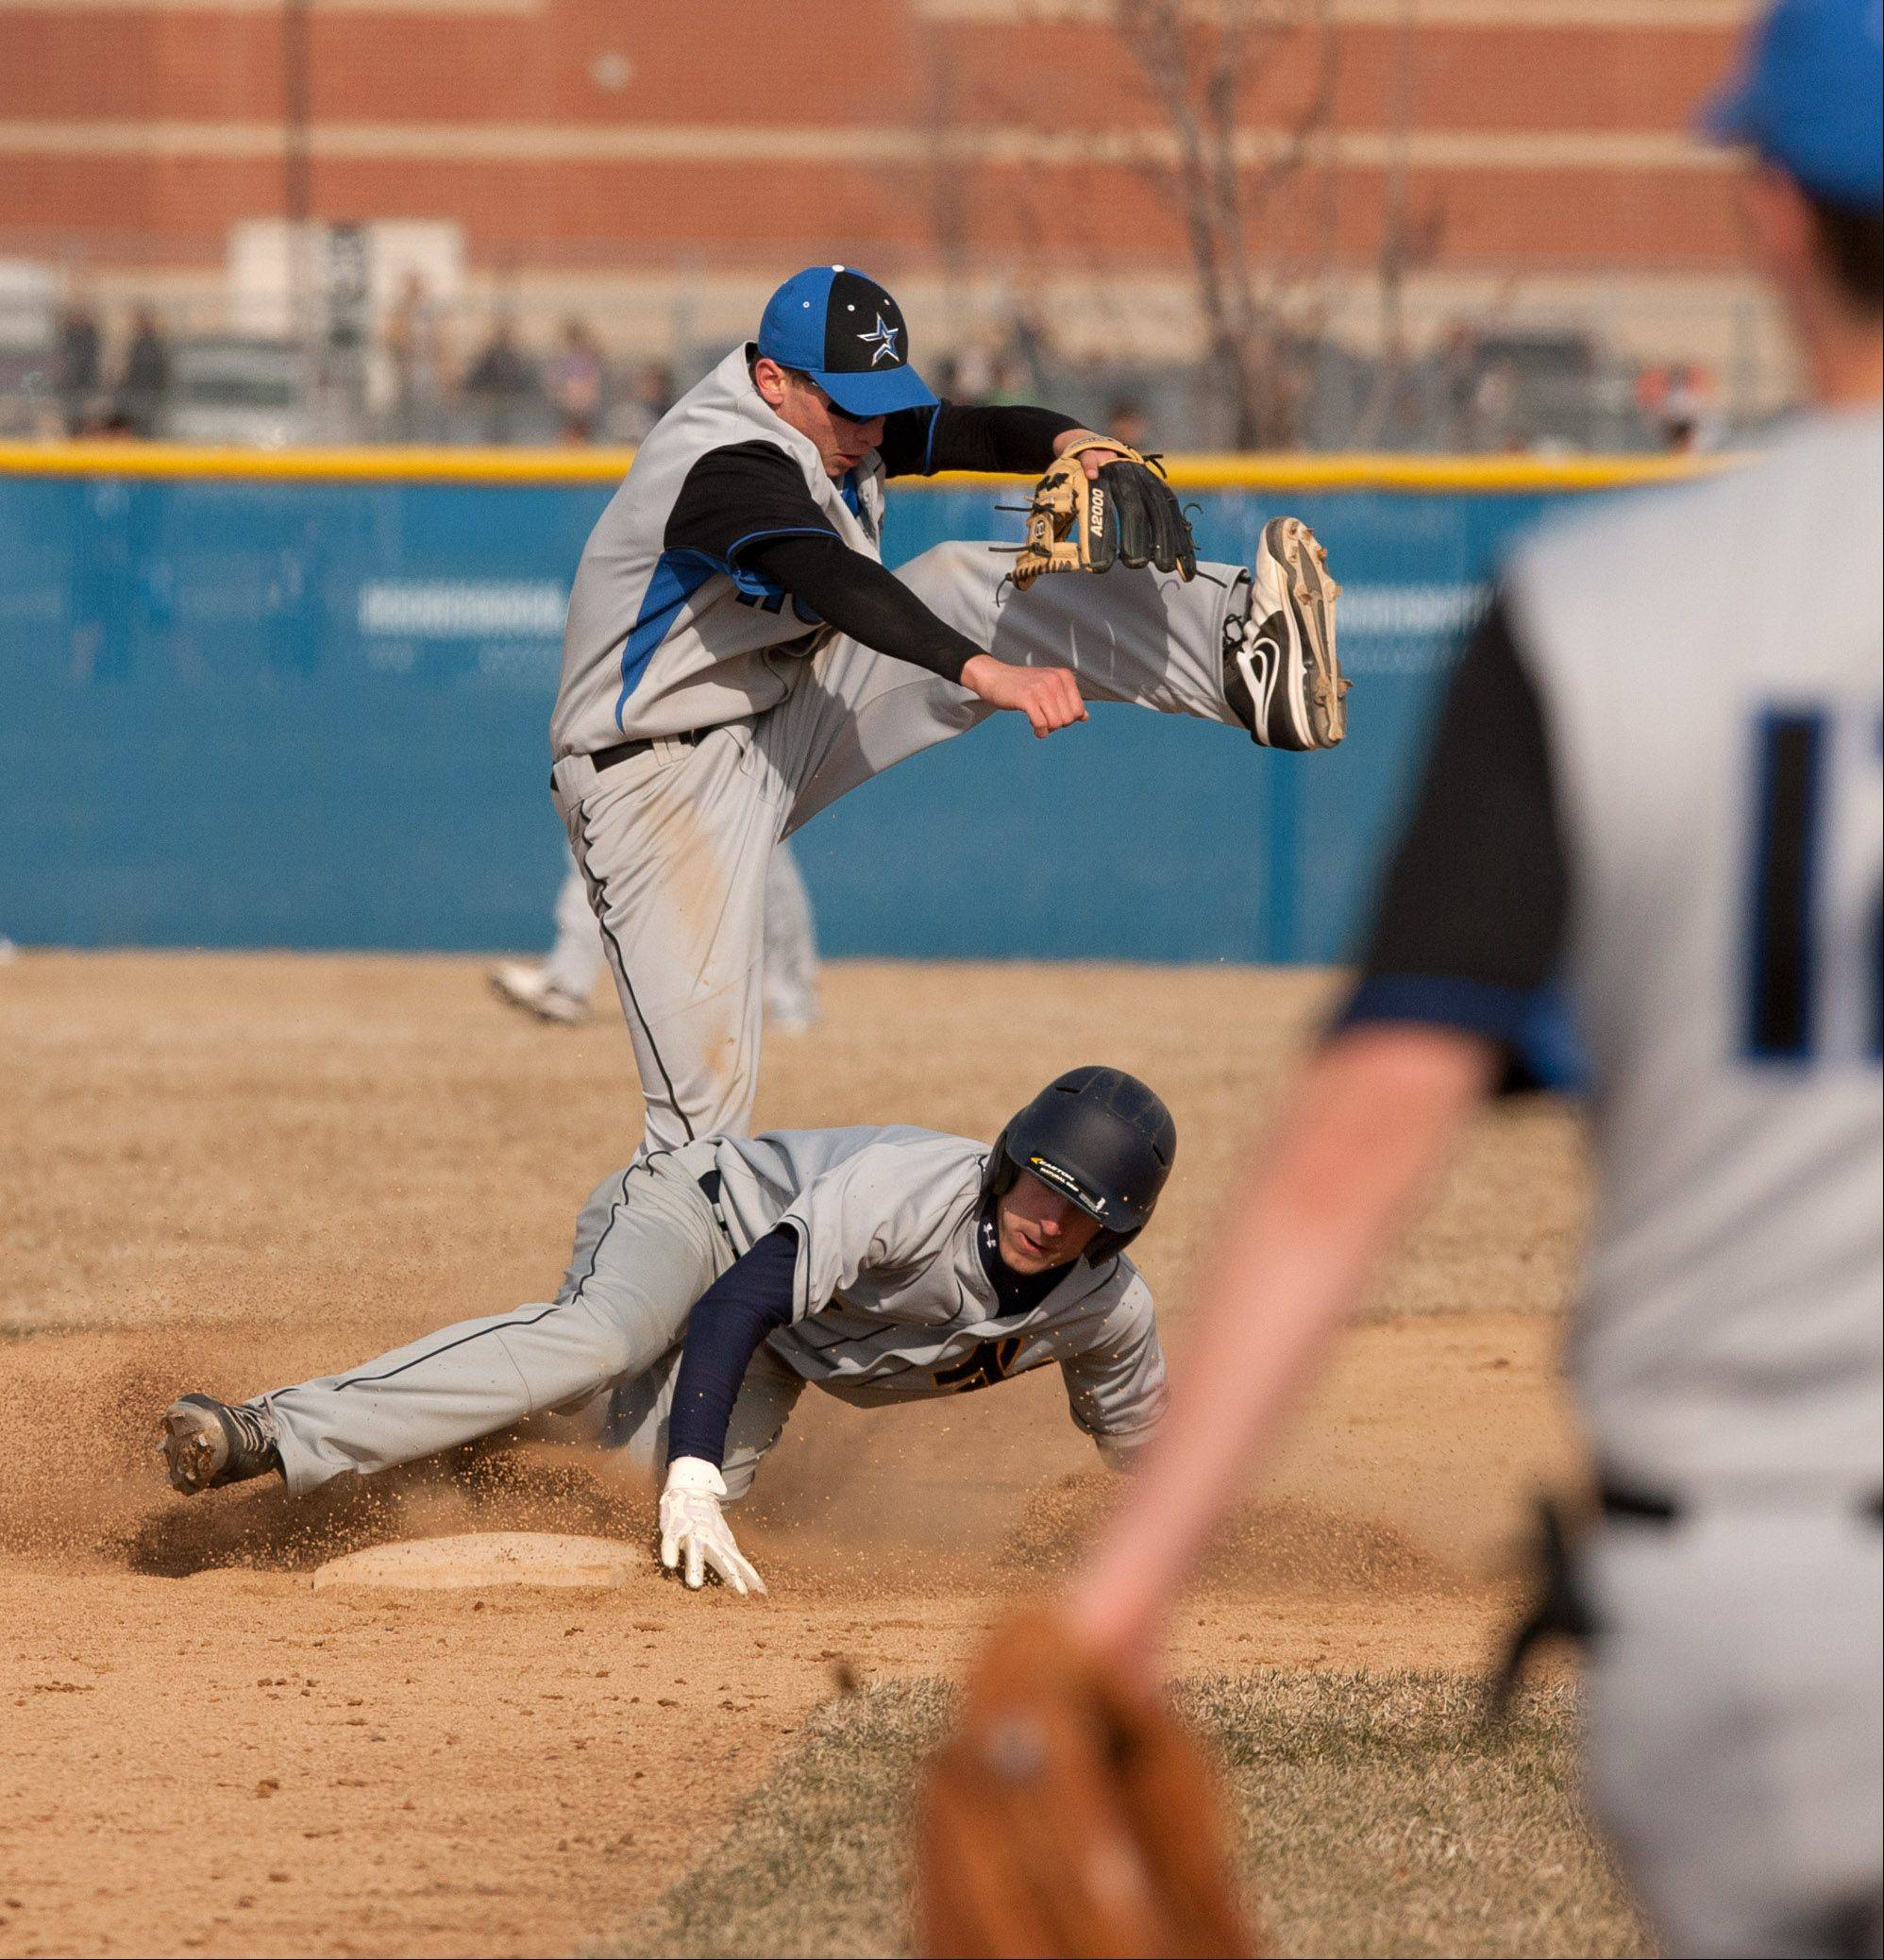 Neuqua Valley�s Josh Piotrowski slides safely into second base under St. Charles North�s Tim Misner, during boys baseball action in Naperville.